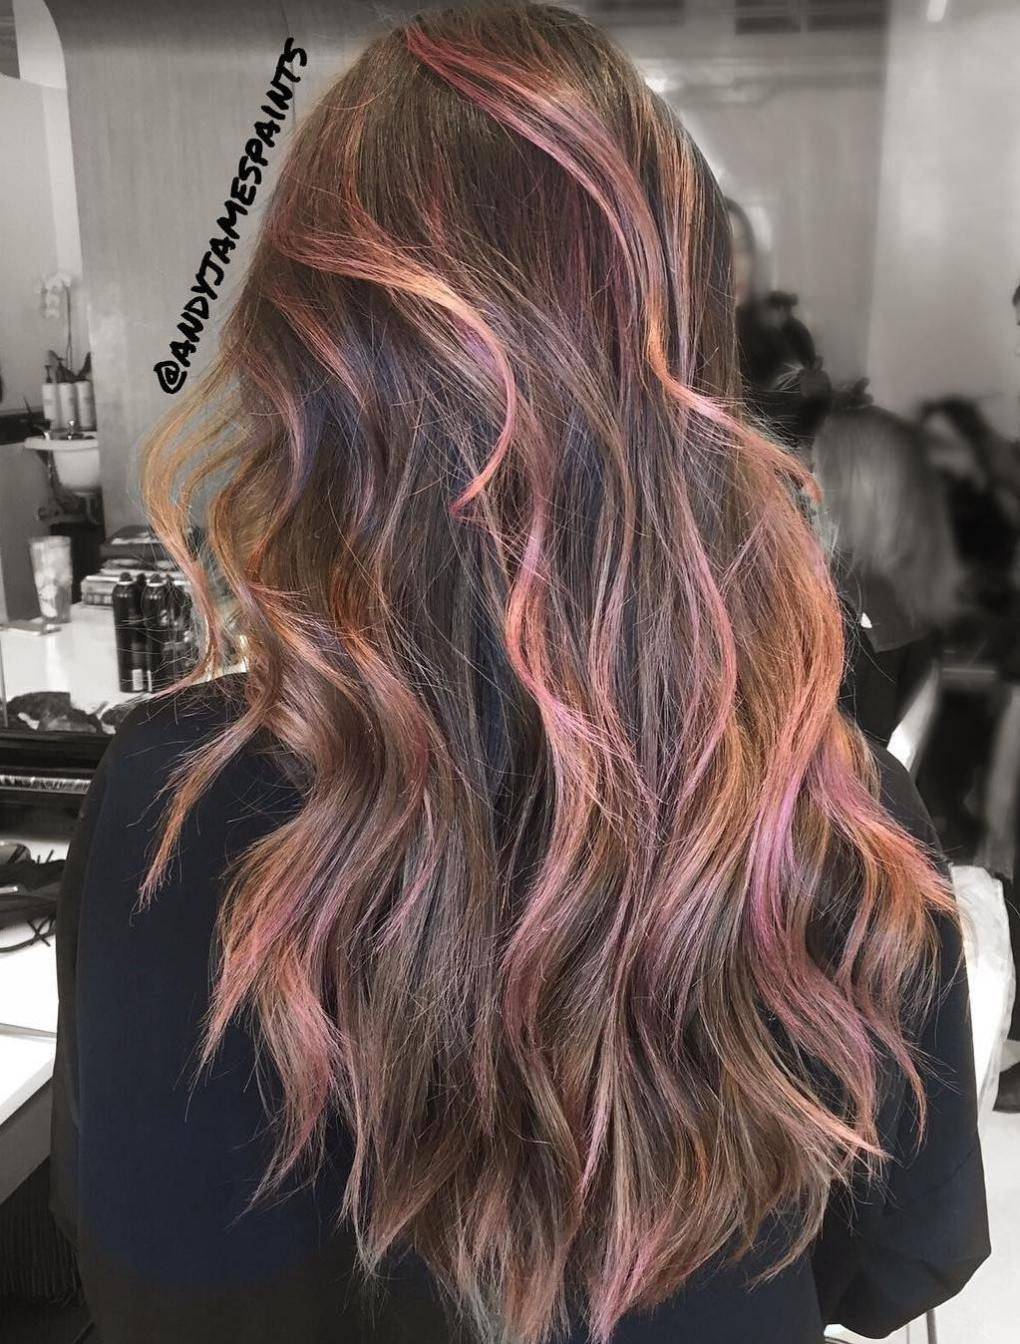 50 Ideas For Light Brown Hair With Highlights And Lowlights Brown Hair With Highlights Brown Hair With Highlights And Lowlights Hair Highlights